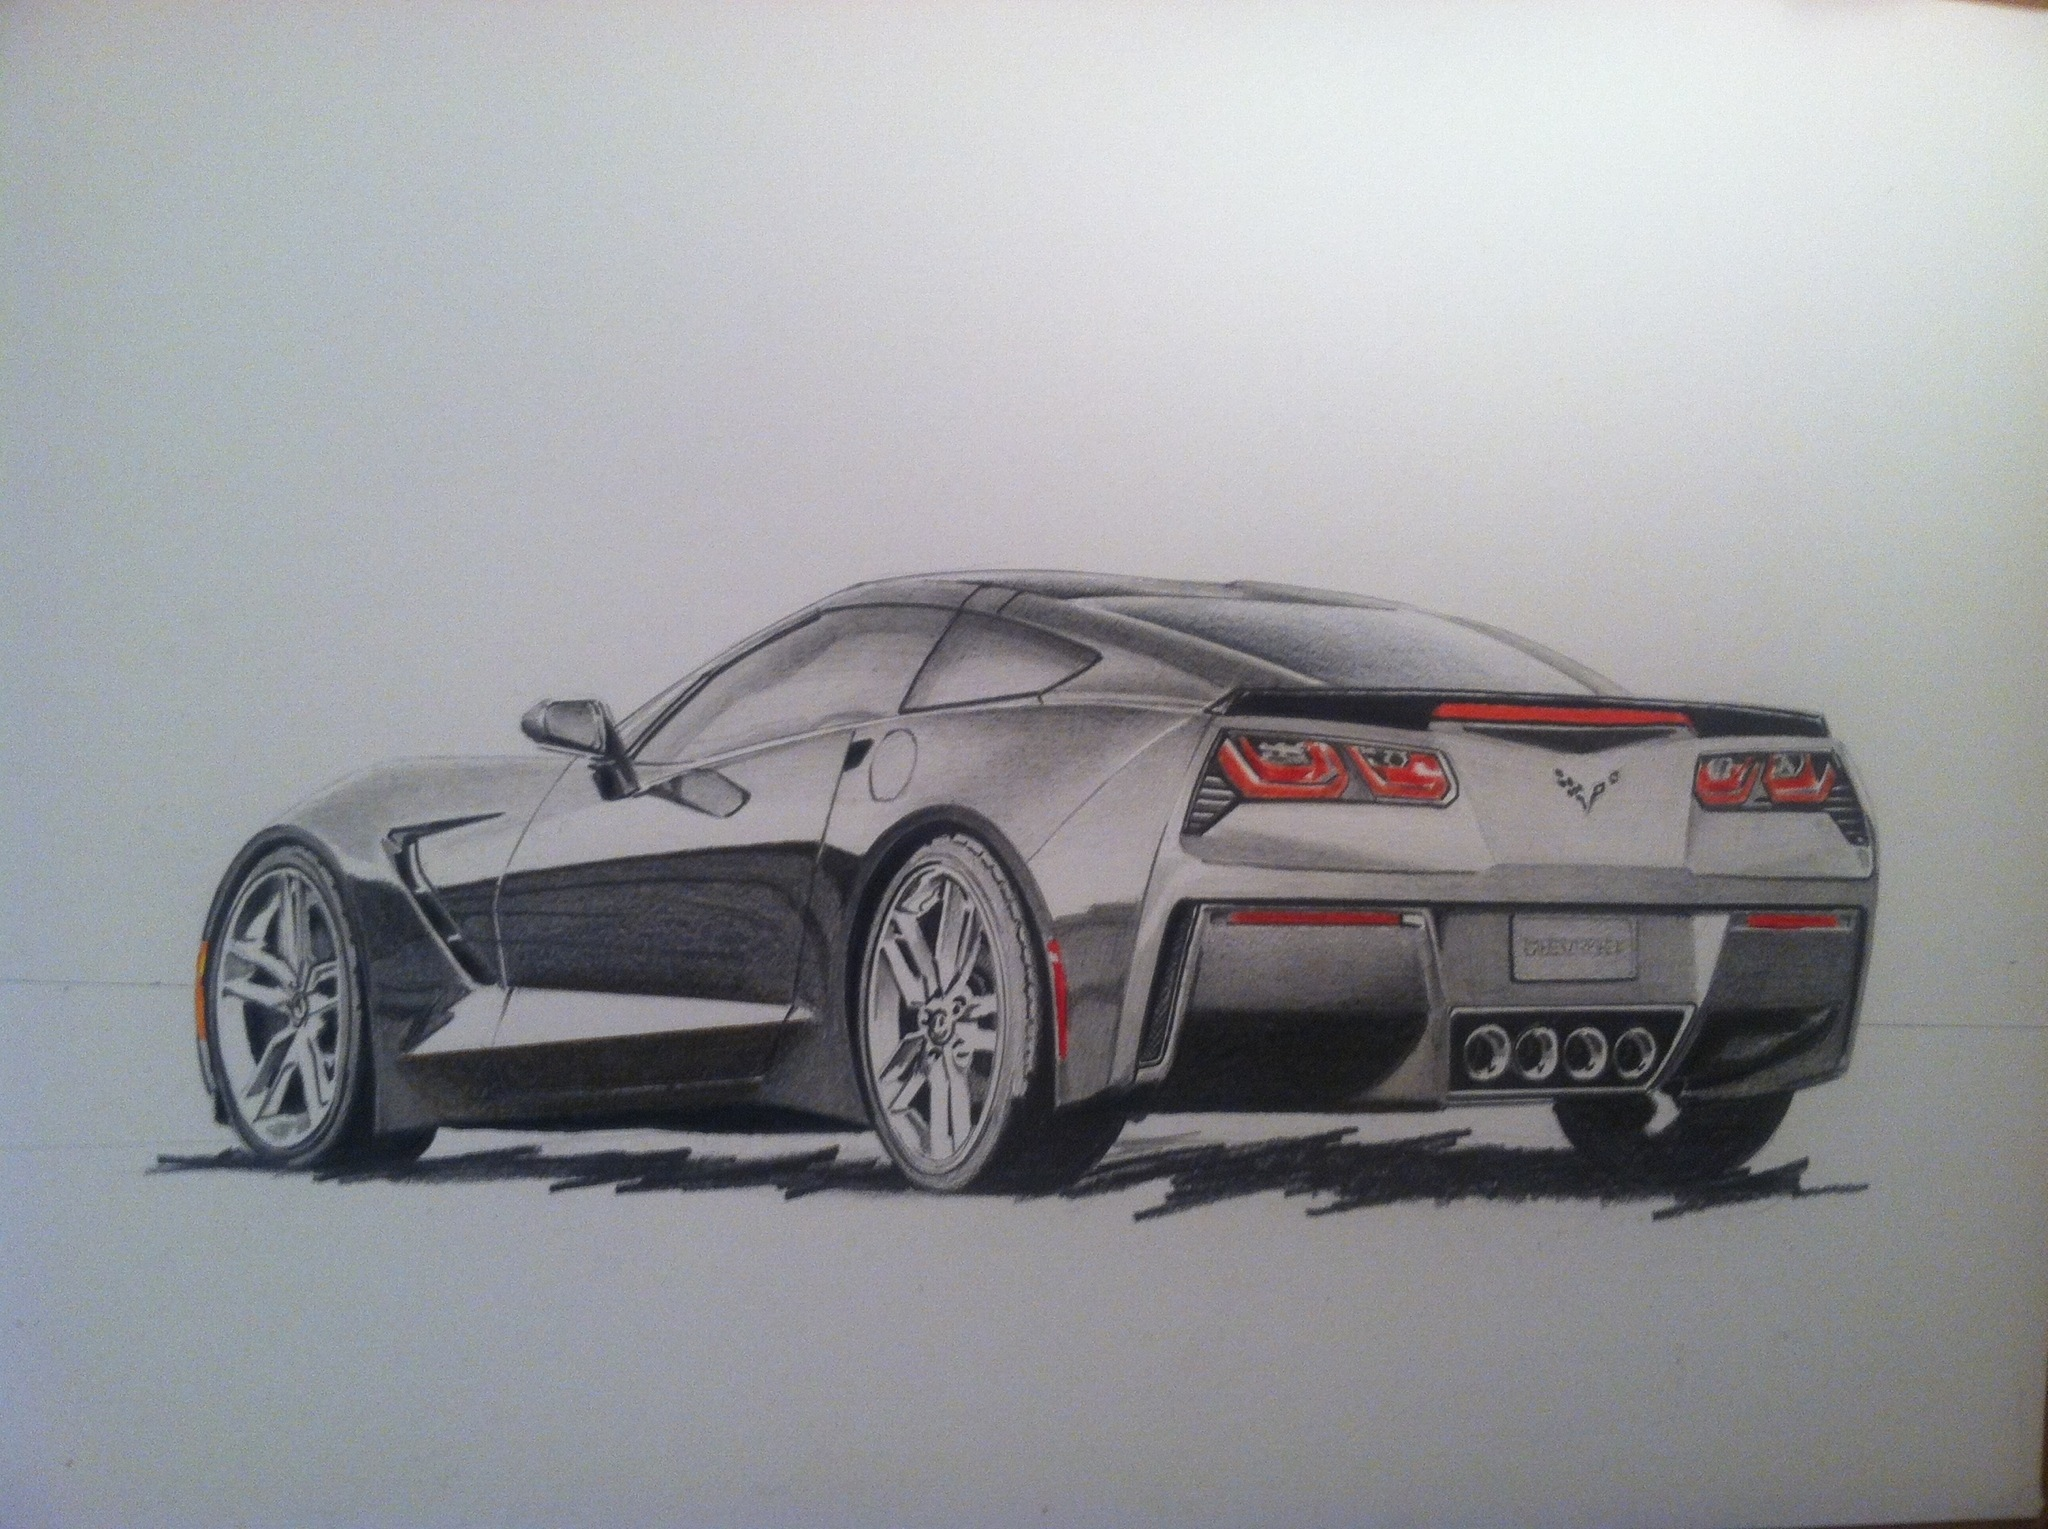 Drawn ferarri wallpaper Made with images drawings Here